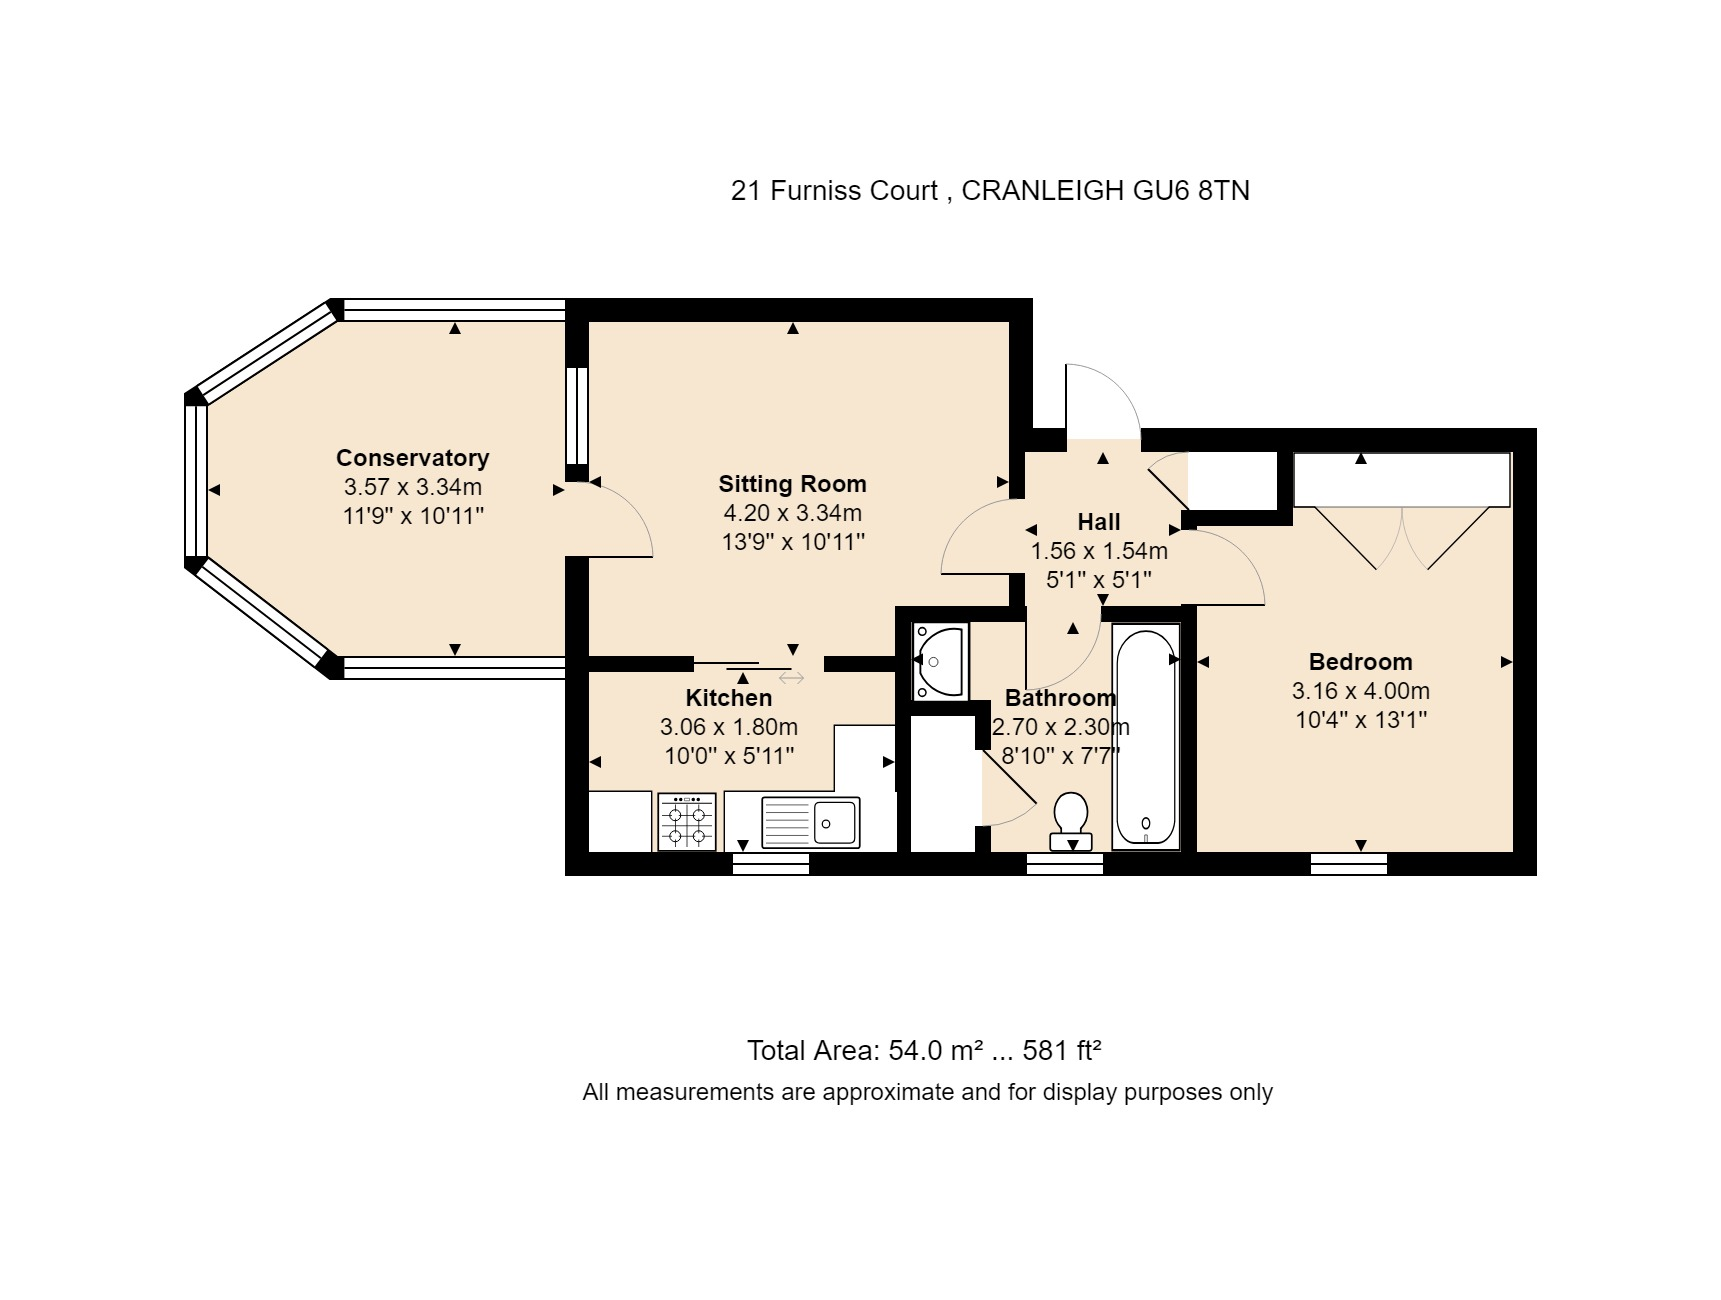 21 Furniss Court Floorplan